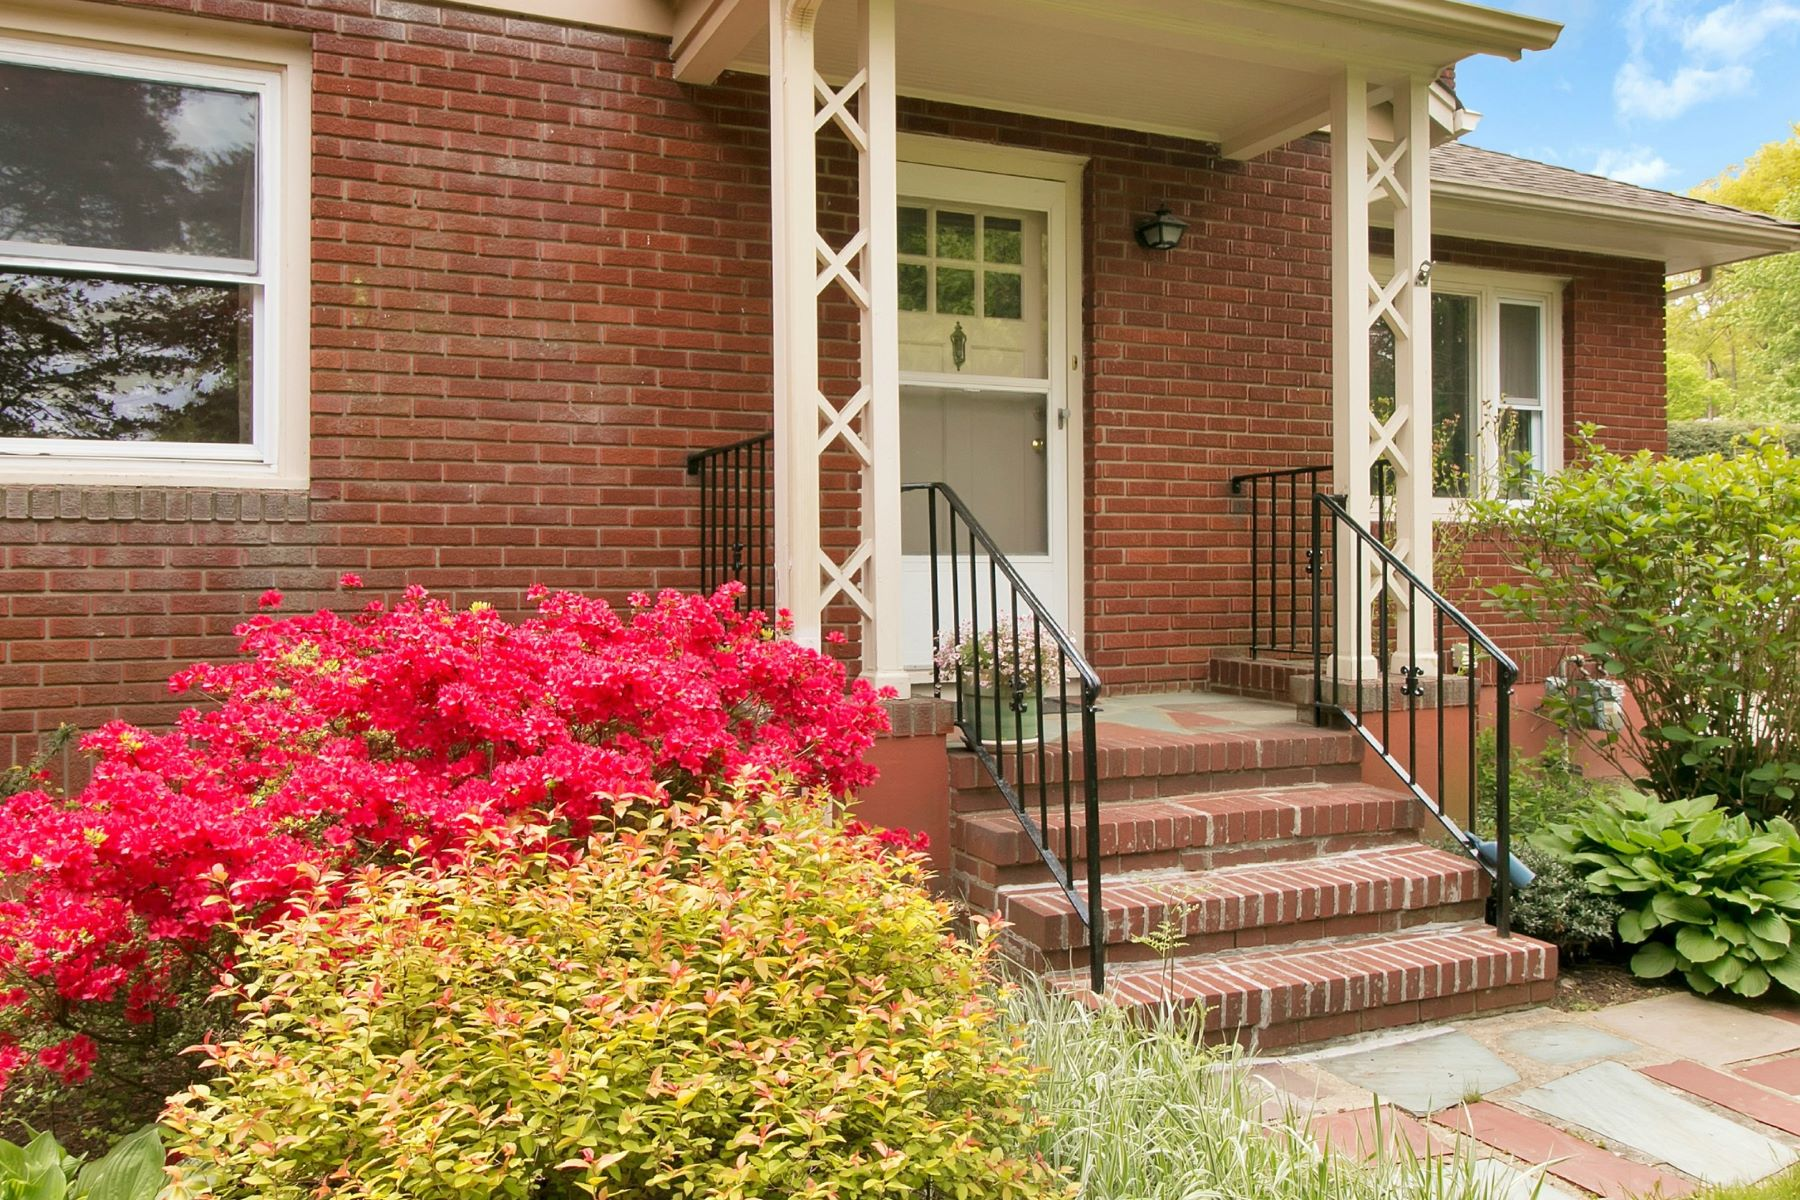 Single Family Home for Sale at Charming Mid-Century Ranch 141 New Hempstead Rd New City, New York, 10956 United States